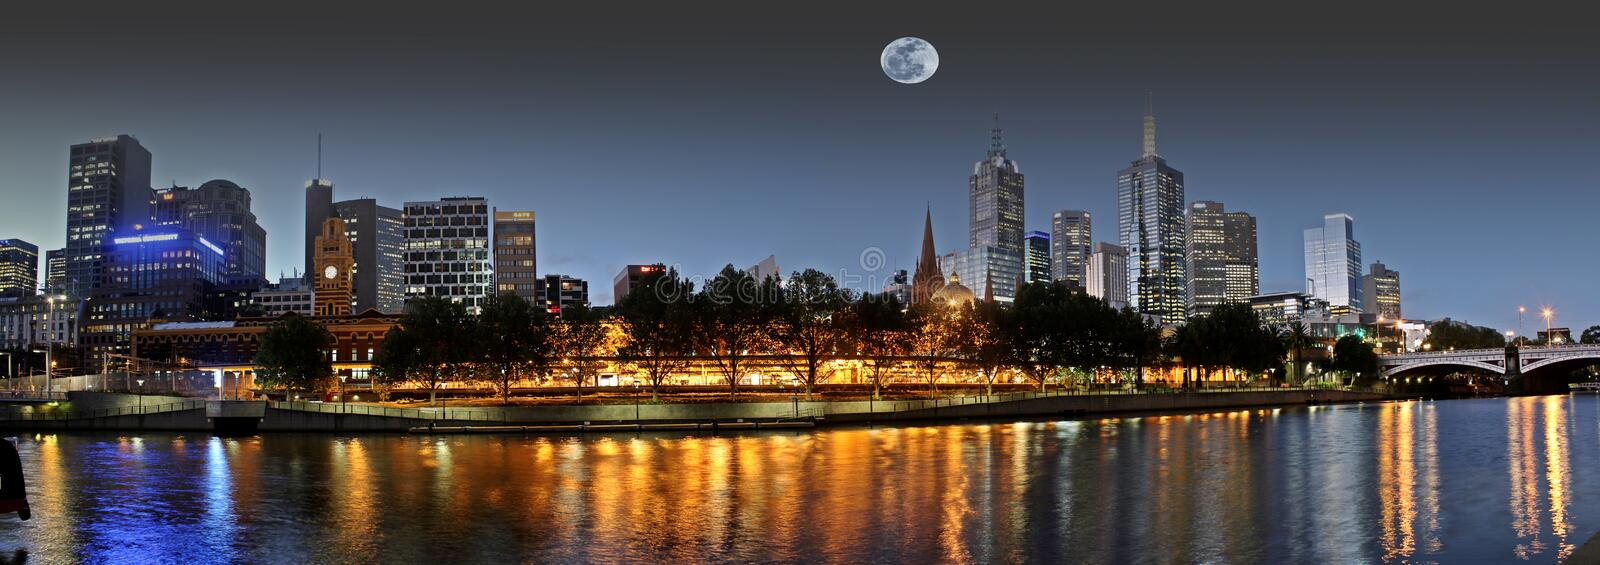 Full moon over Melbourne royalty free stock photos